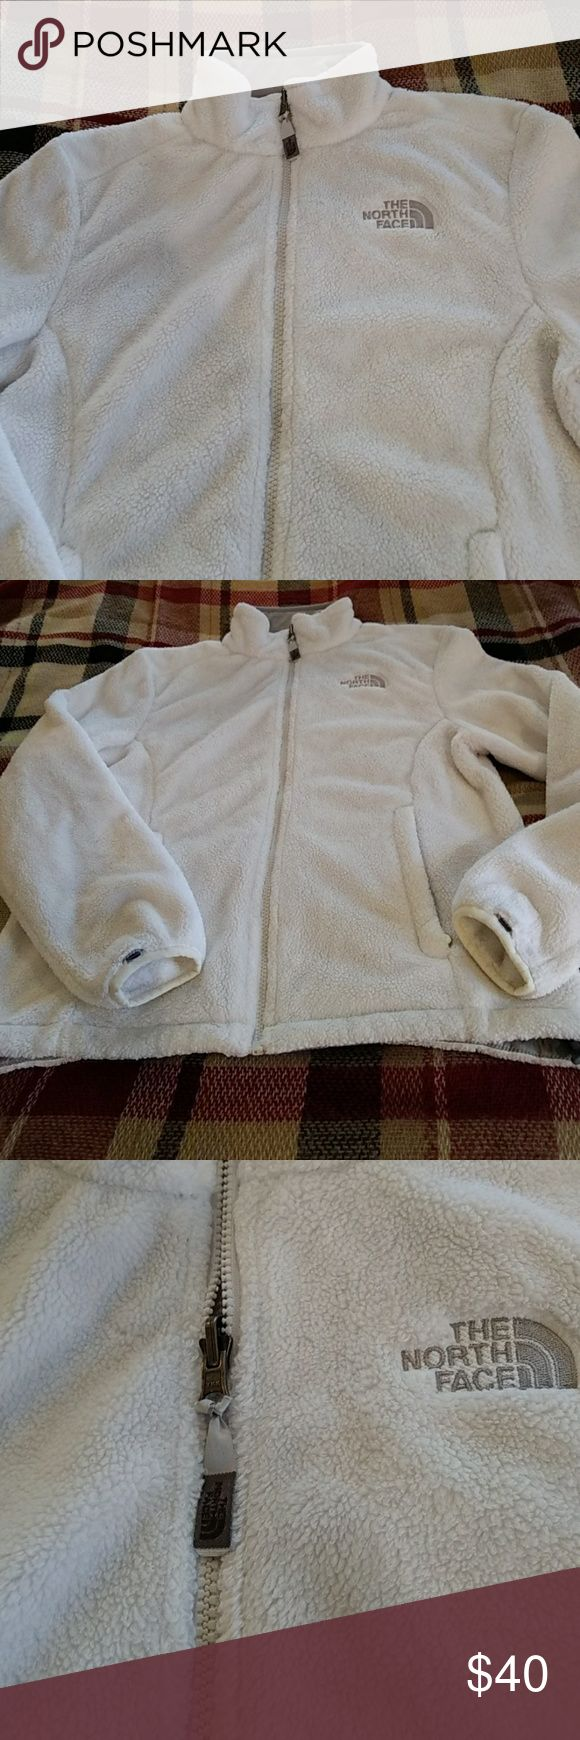 The North Face fleece zip up The North Face zip up fleece in excellent condition women's small/petite white The North Face Tops Sweatshirts & Hoodies